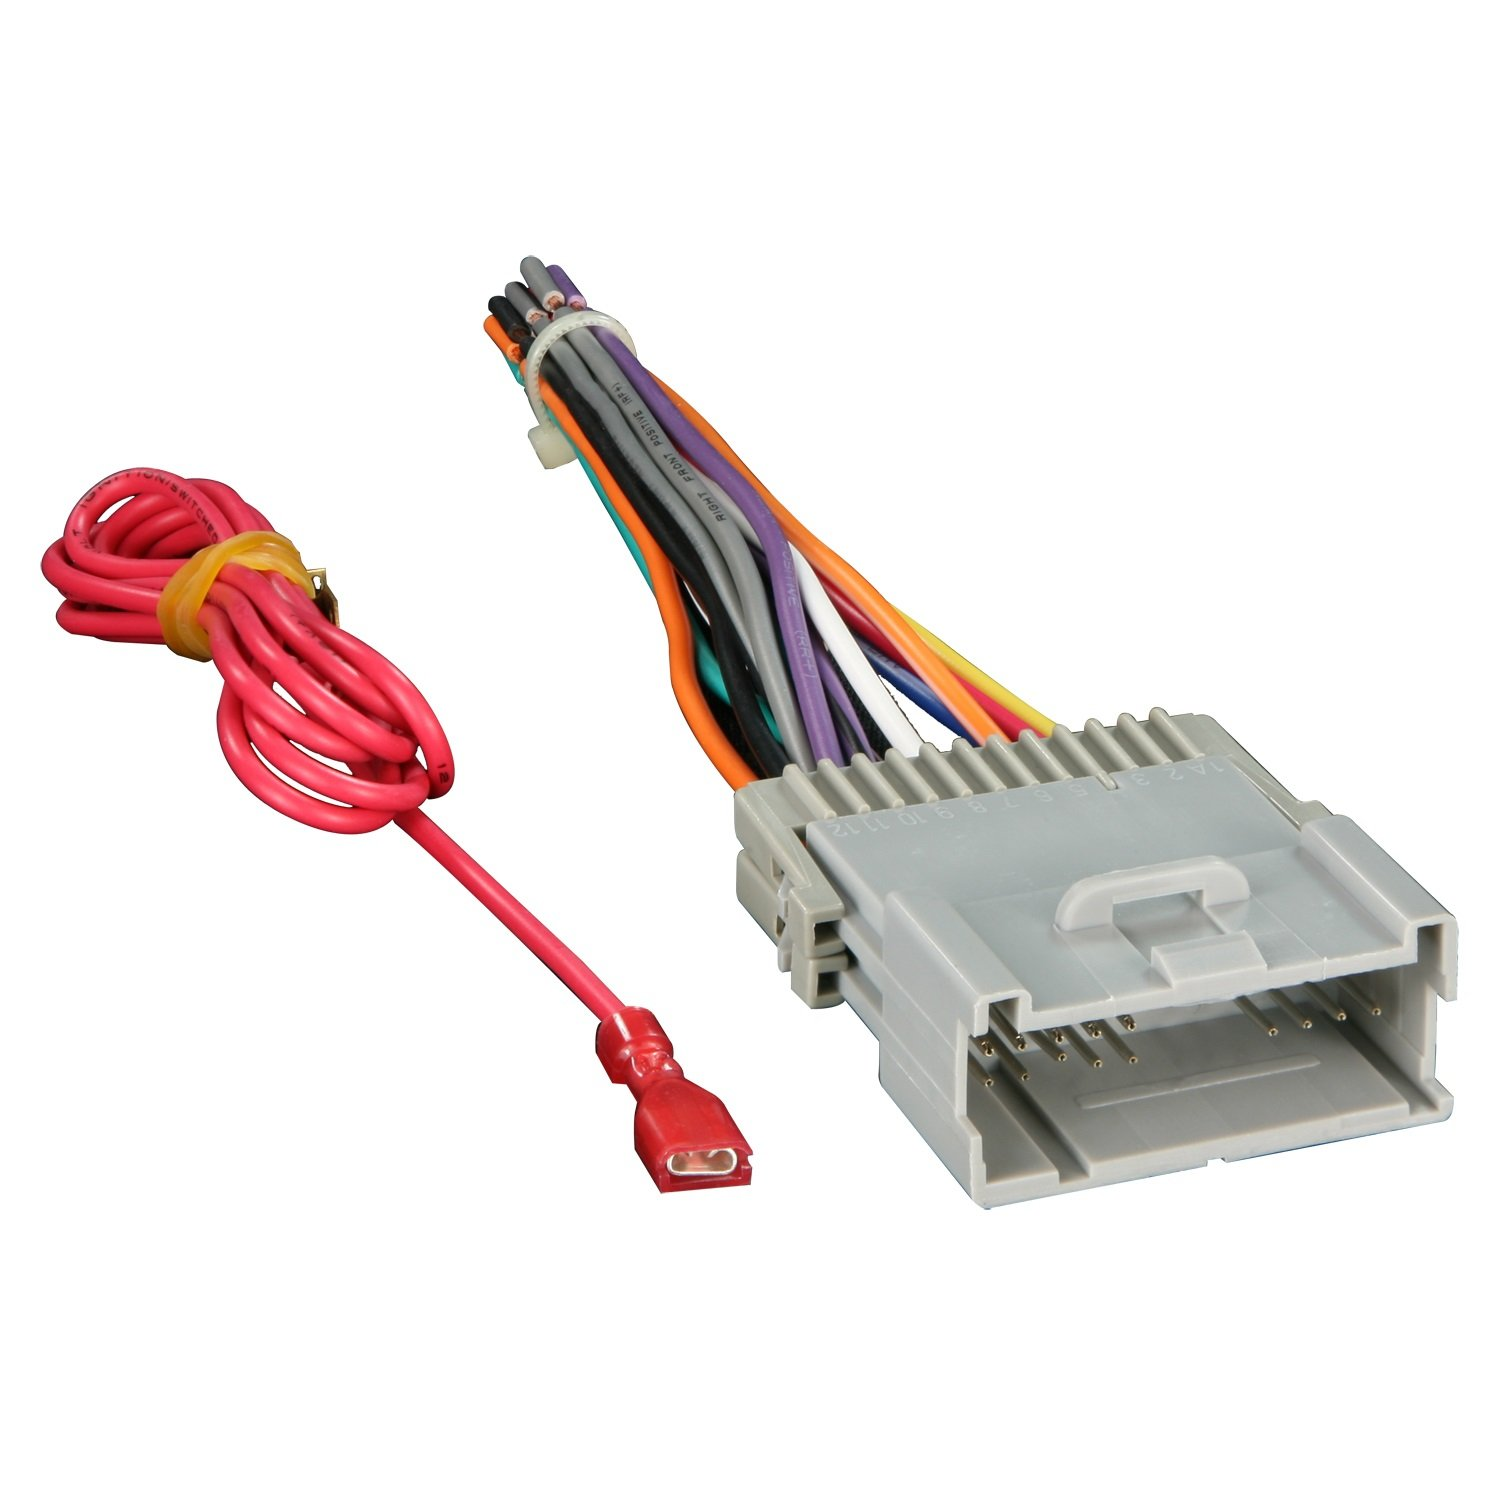 61eewxp9orL._SL1500_ amazon com metra 70 2003 radio wiring harness for gm 98 08 2004 chevy cavalier wiring harness at crackthecode.co